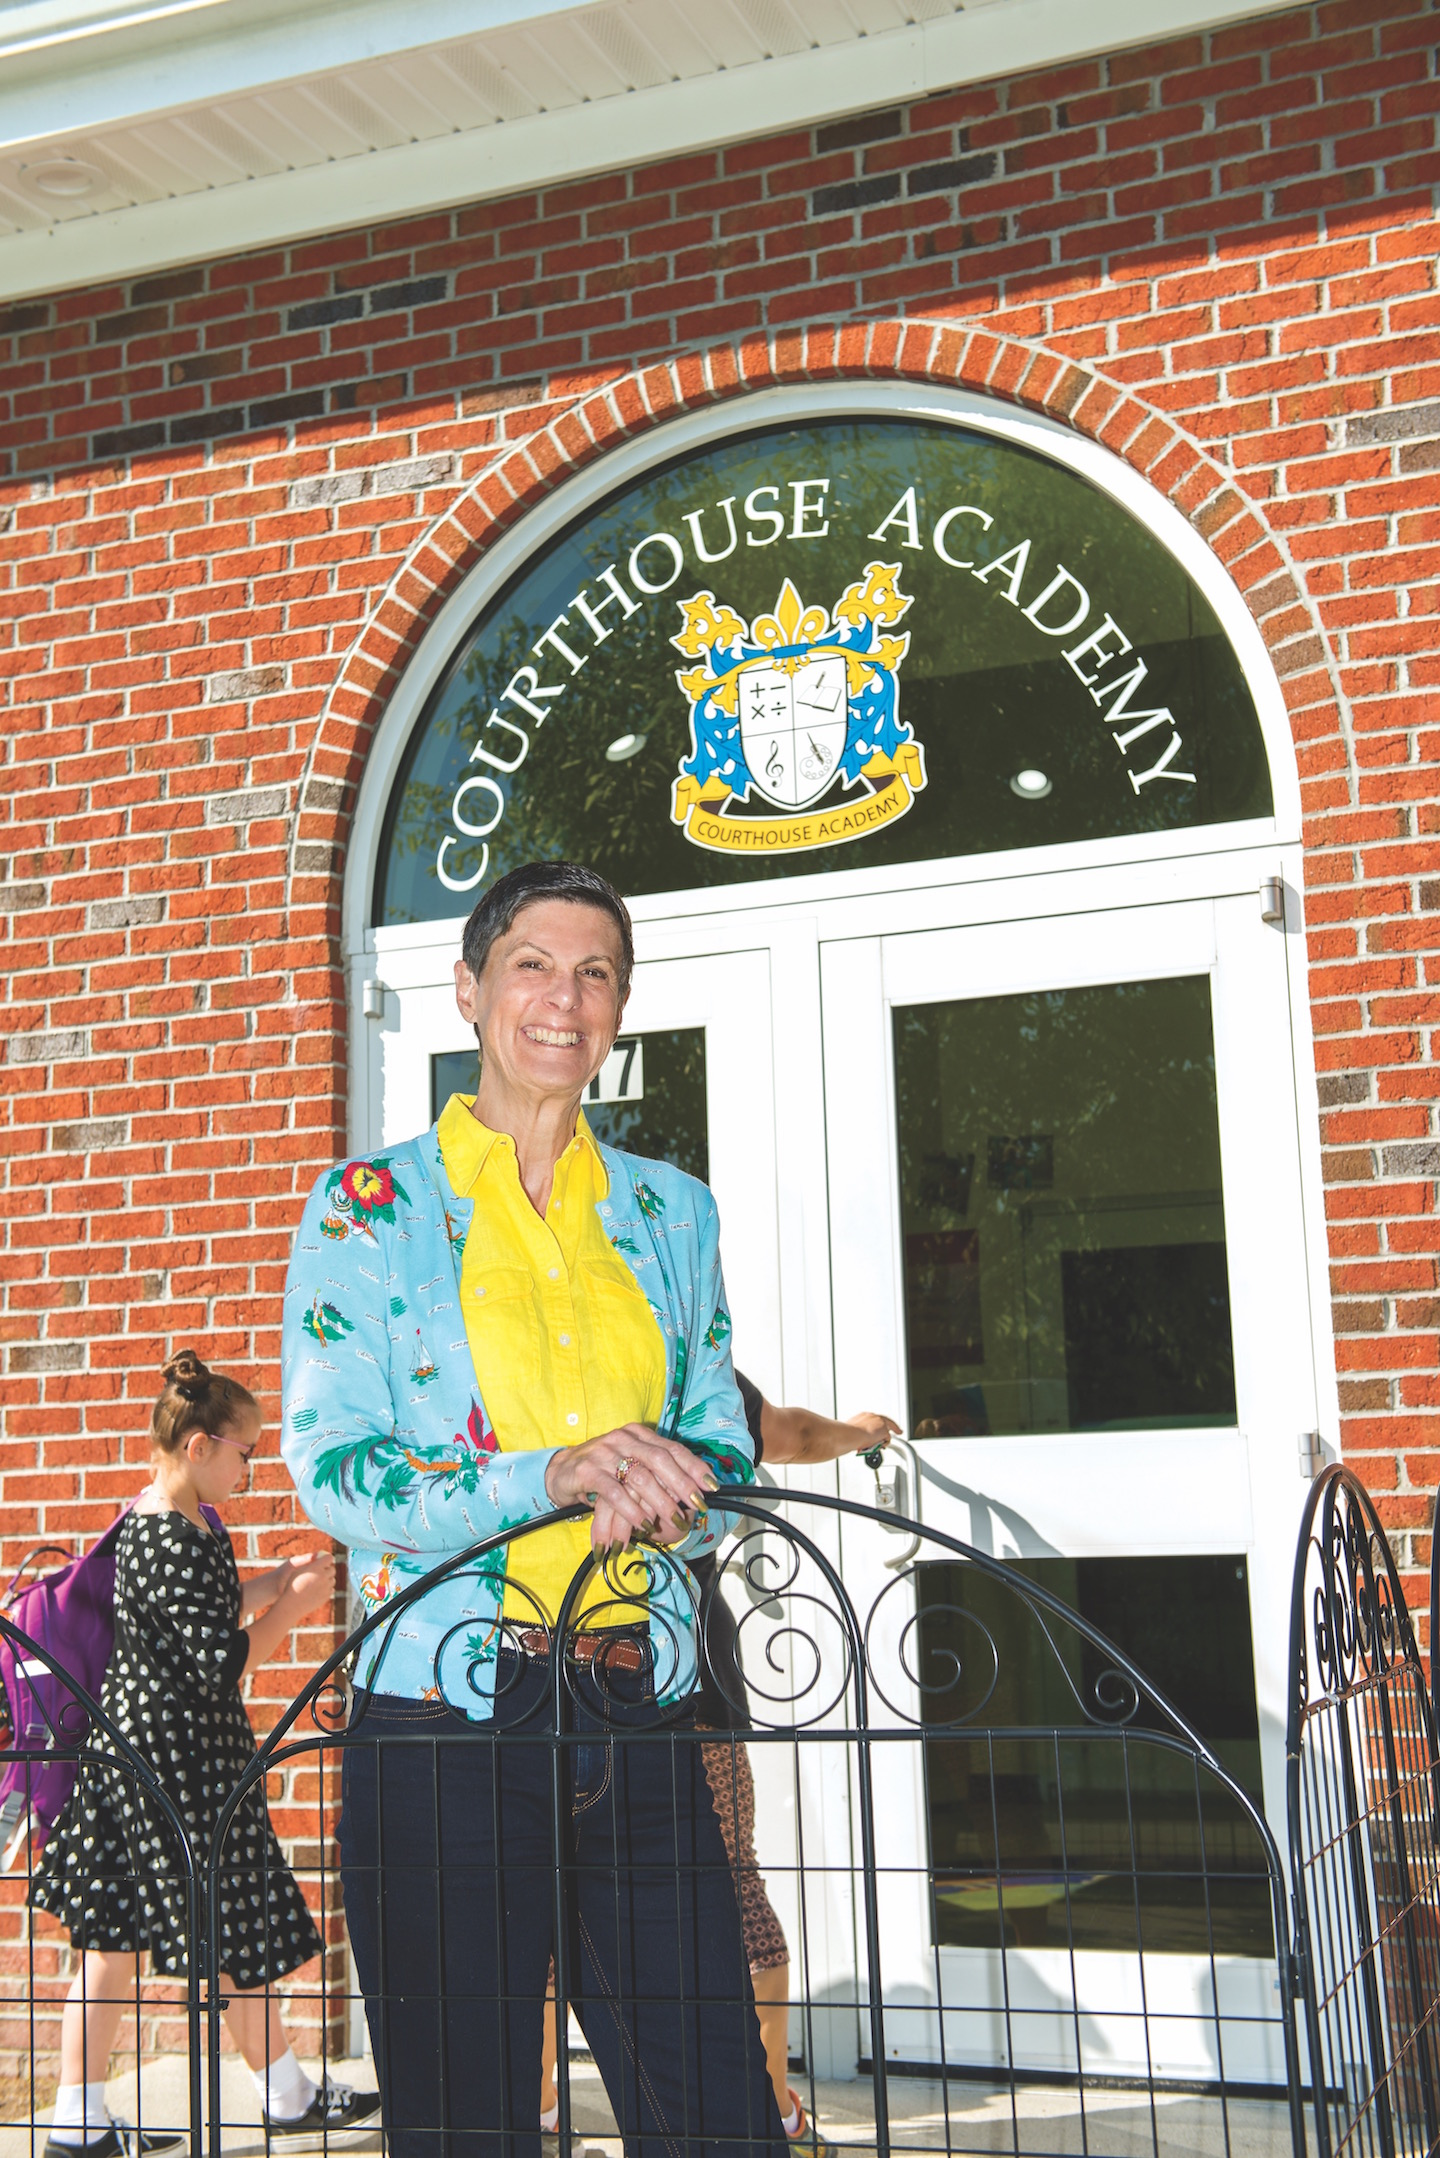 Courthouse Academy Virginia Beach founder and owner